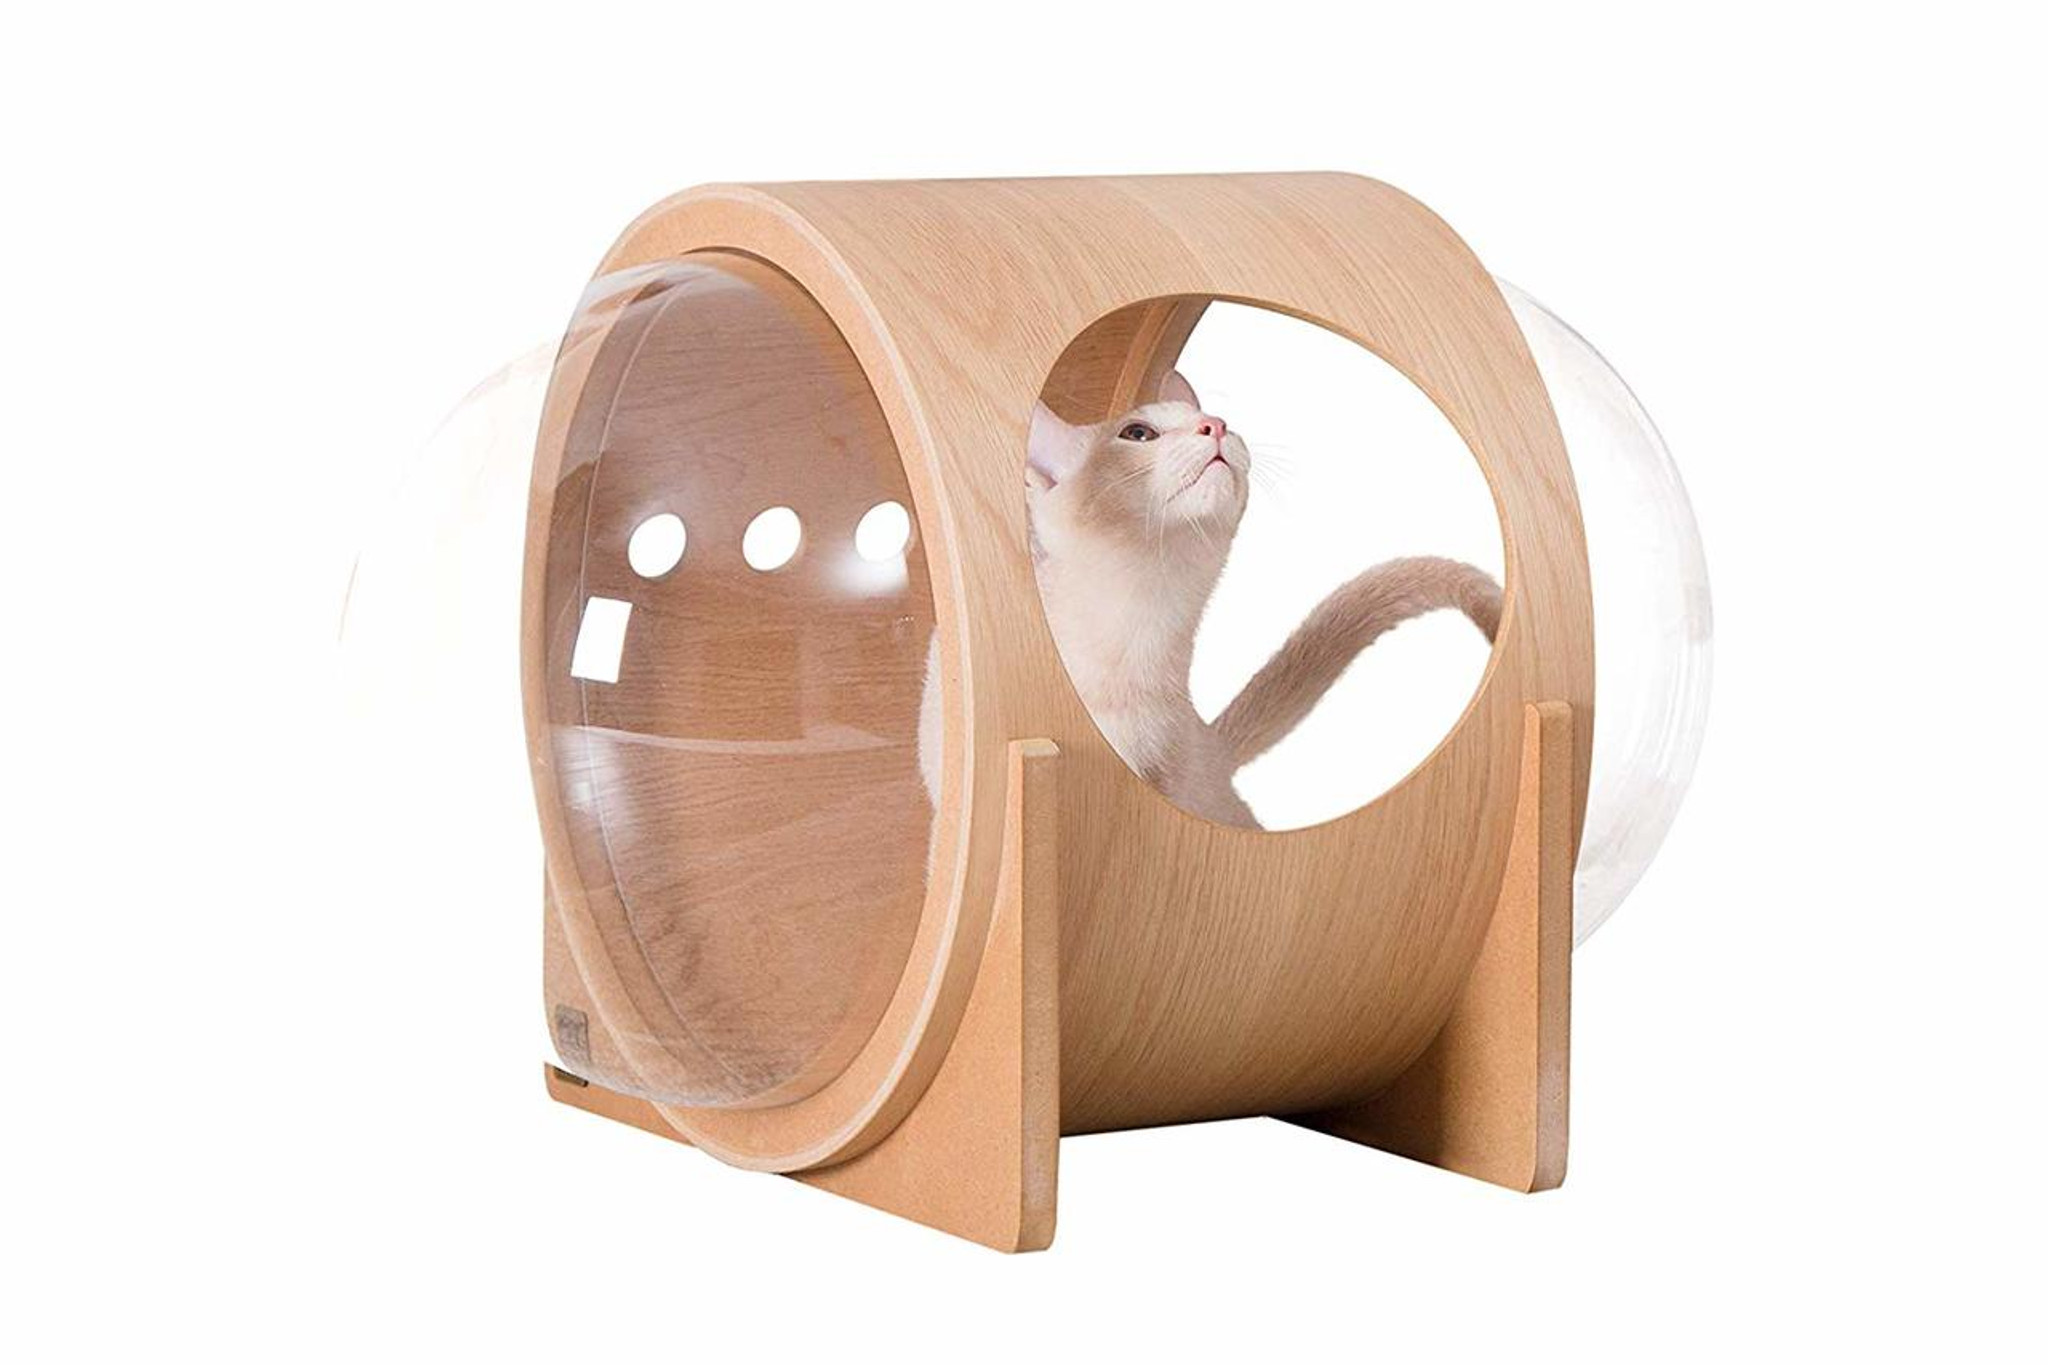 best mid century modern bubble cat bed with clear acrylic lucite plastic windows doors cool sleek hip pet furniture myzoo/amazon spaceship alpha